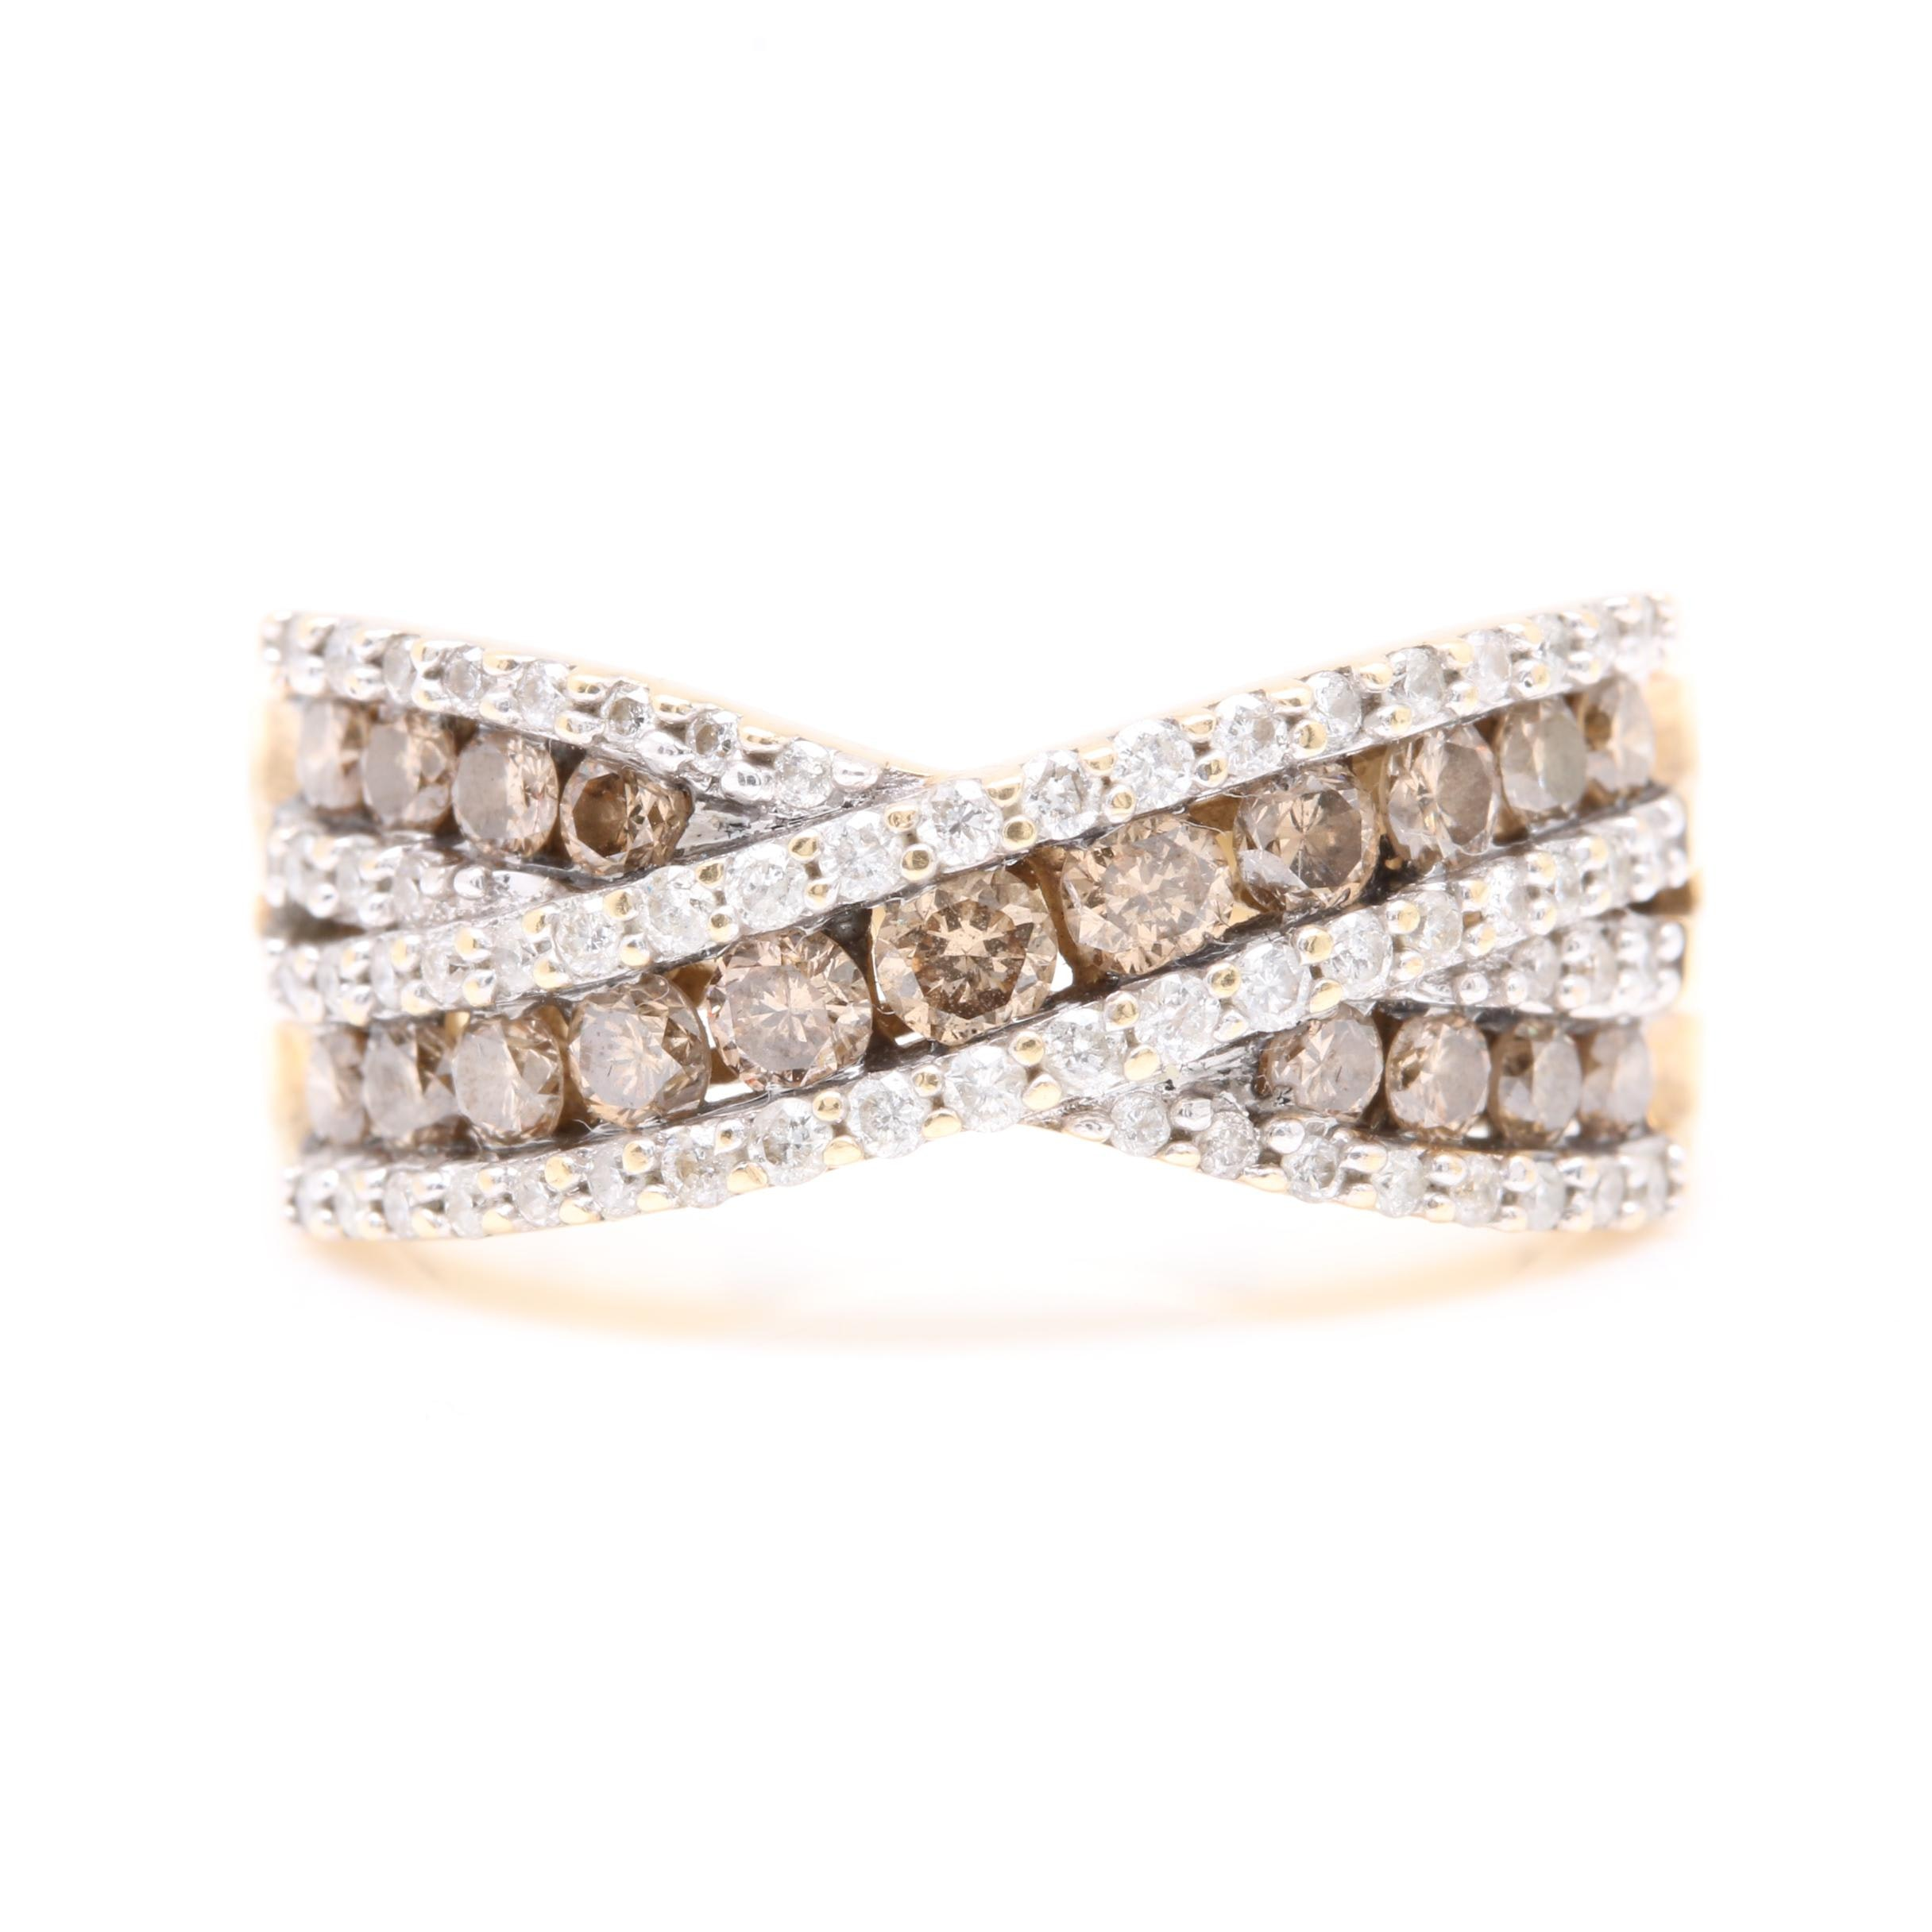 Kallati 10K Yellow Gold 1.21 CTW Diamond Ring